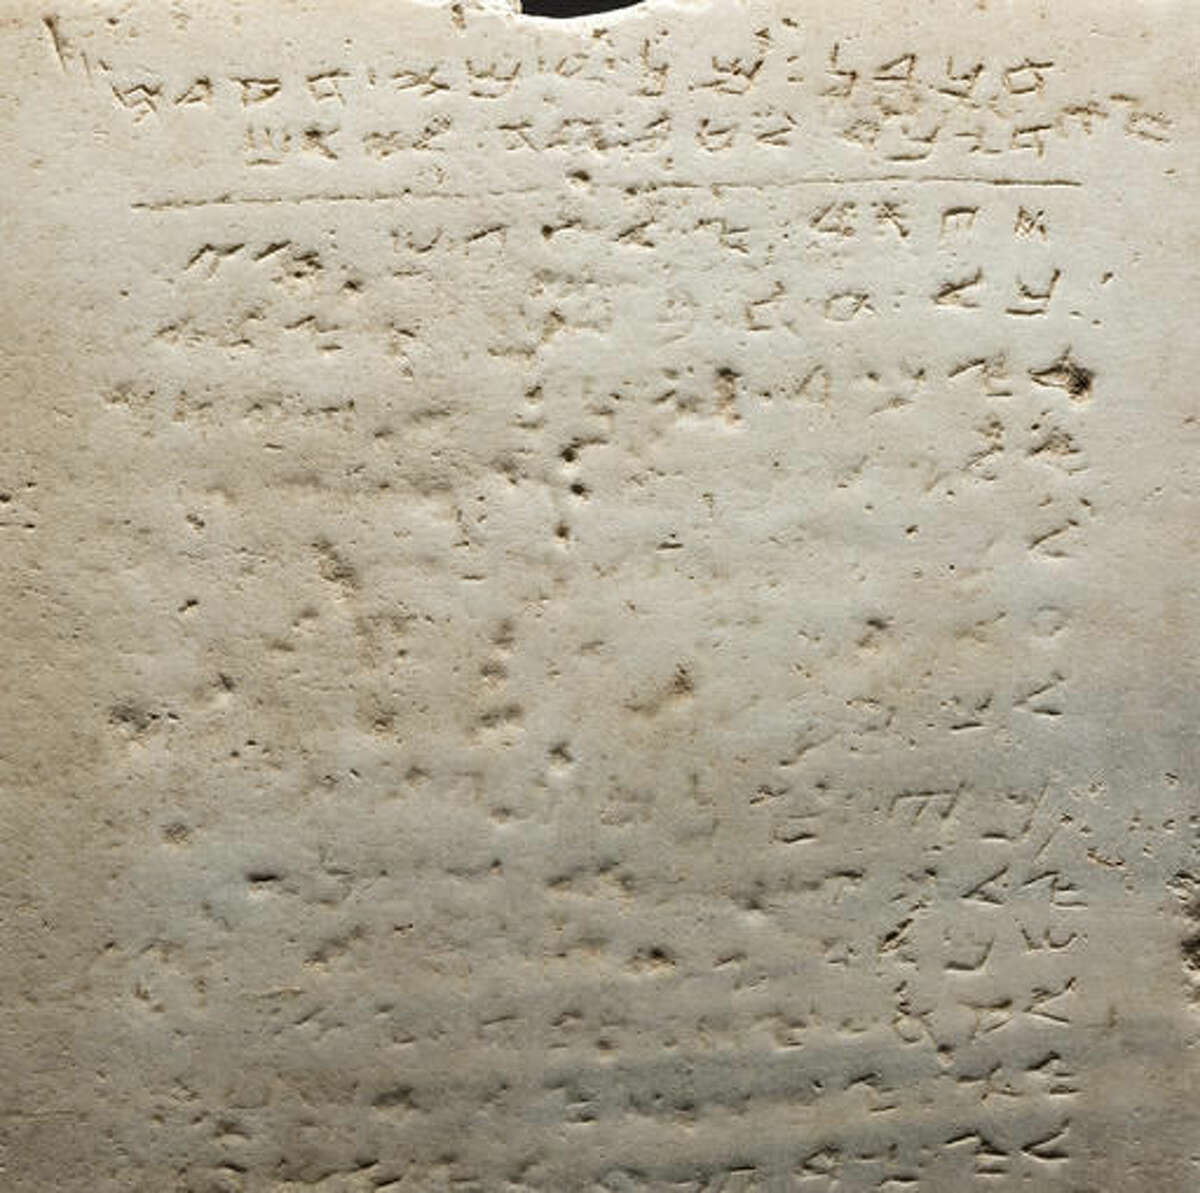 This undated photo provided by Heritage Auctions, HA.com shows the world's earliest-known stone inscription of the Ten Commandments - a two-foot square slab of white marble, weighing about 115 pounds and inscribed in an early Hebrew script called Samaritan, that sold for $850,000 Wednesday evening, Nov. 16, 2016, at a public auction of ancient Biblical archaeology artifacts held by Heritage Auctions in Beverly Hills, Calif. (Matt Roppolo/Heritage Auctions, HA.com via AP)